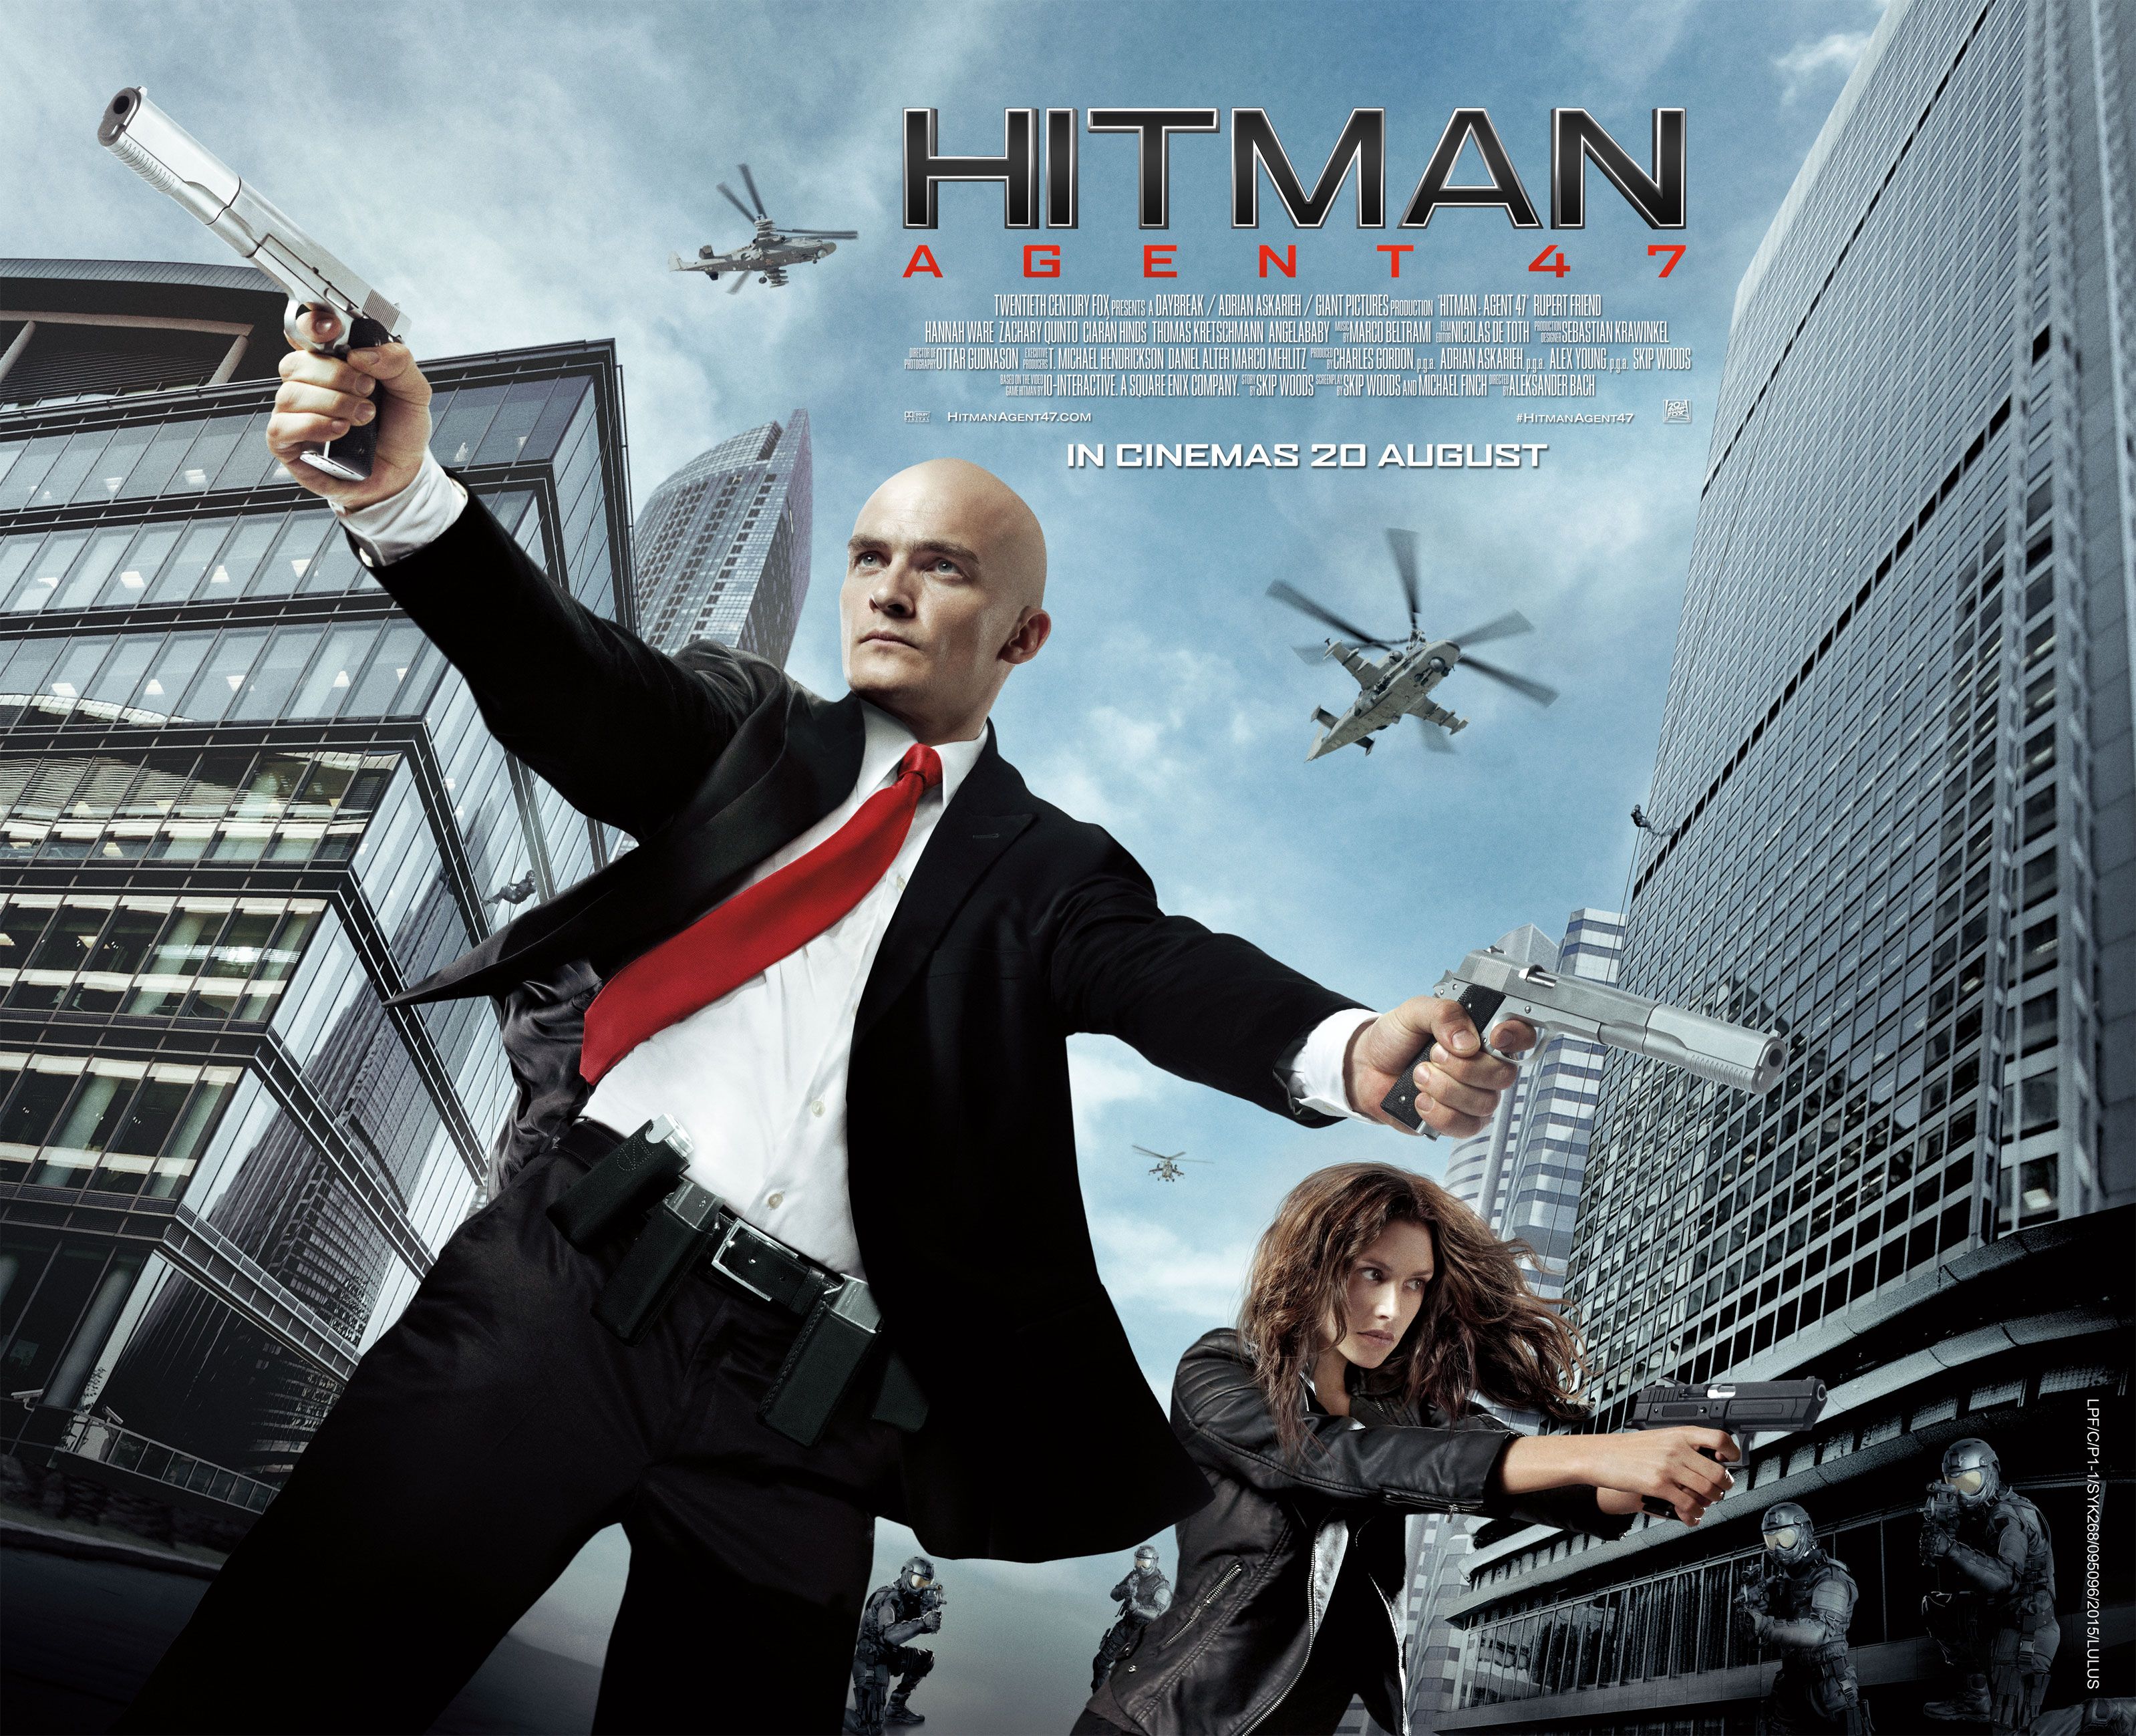 Hitman Agent 47 Review Dumb Fun Action B Movie